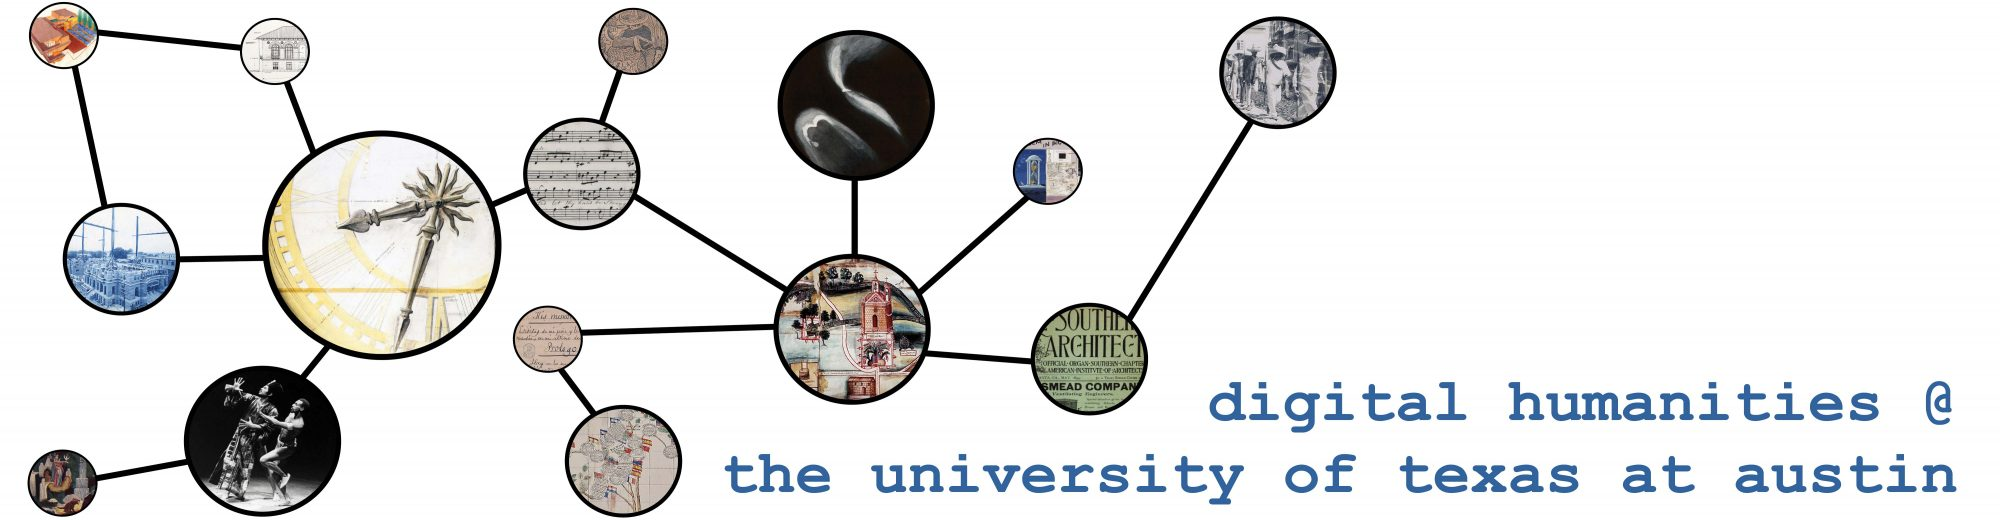 DH@UT: Building a Digital Humanities Ecosystem for Innovative Research in the Liberal Arts